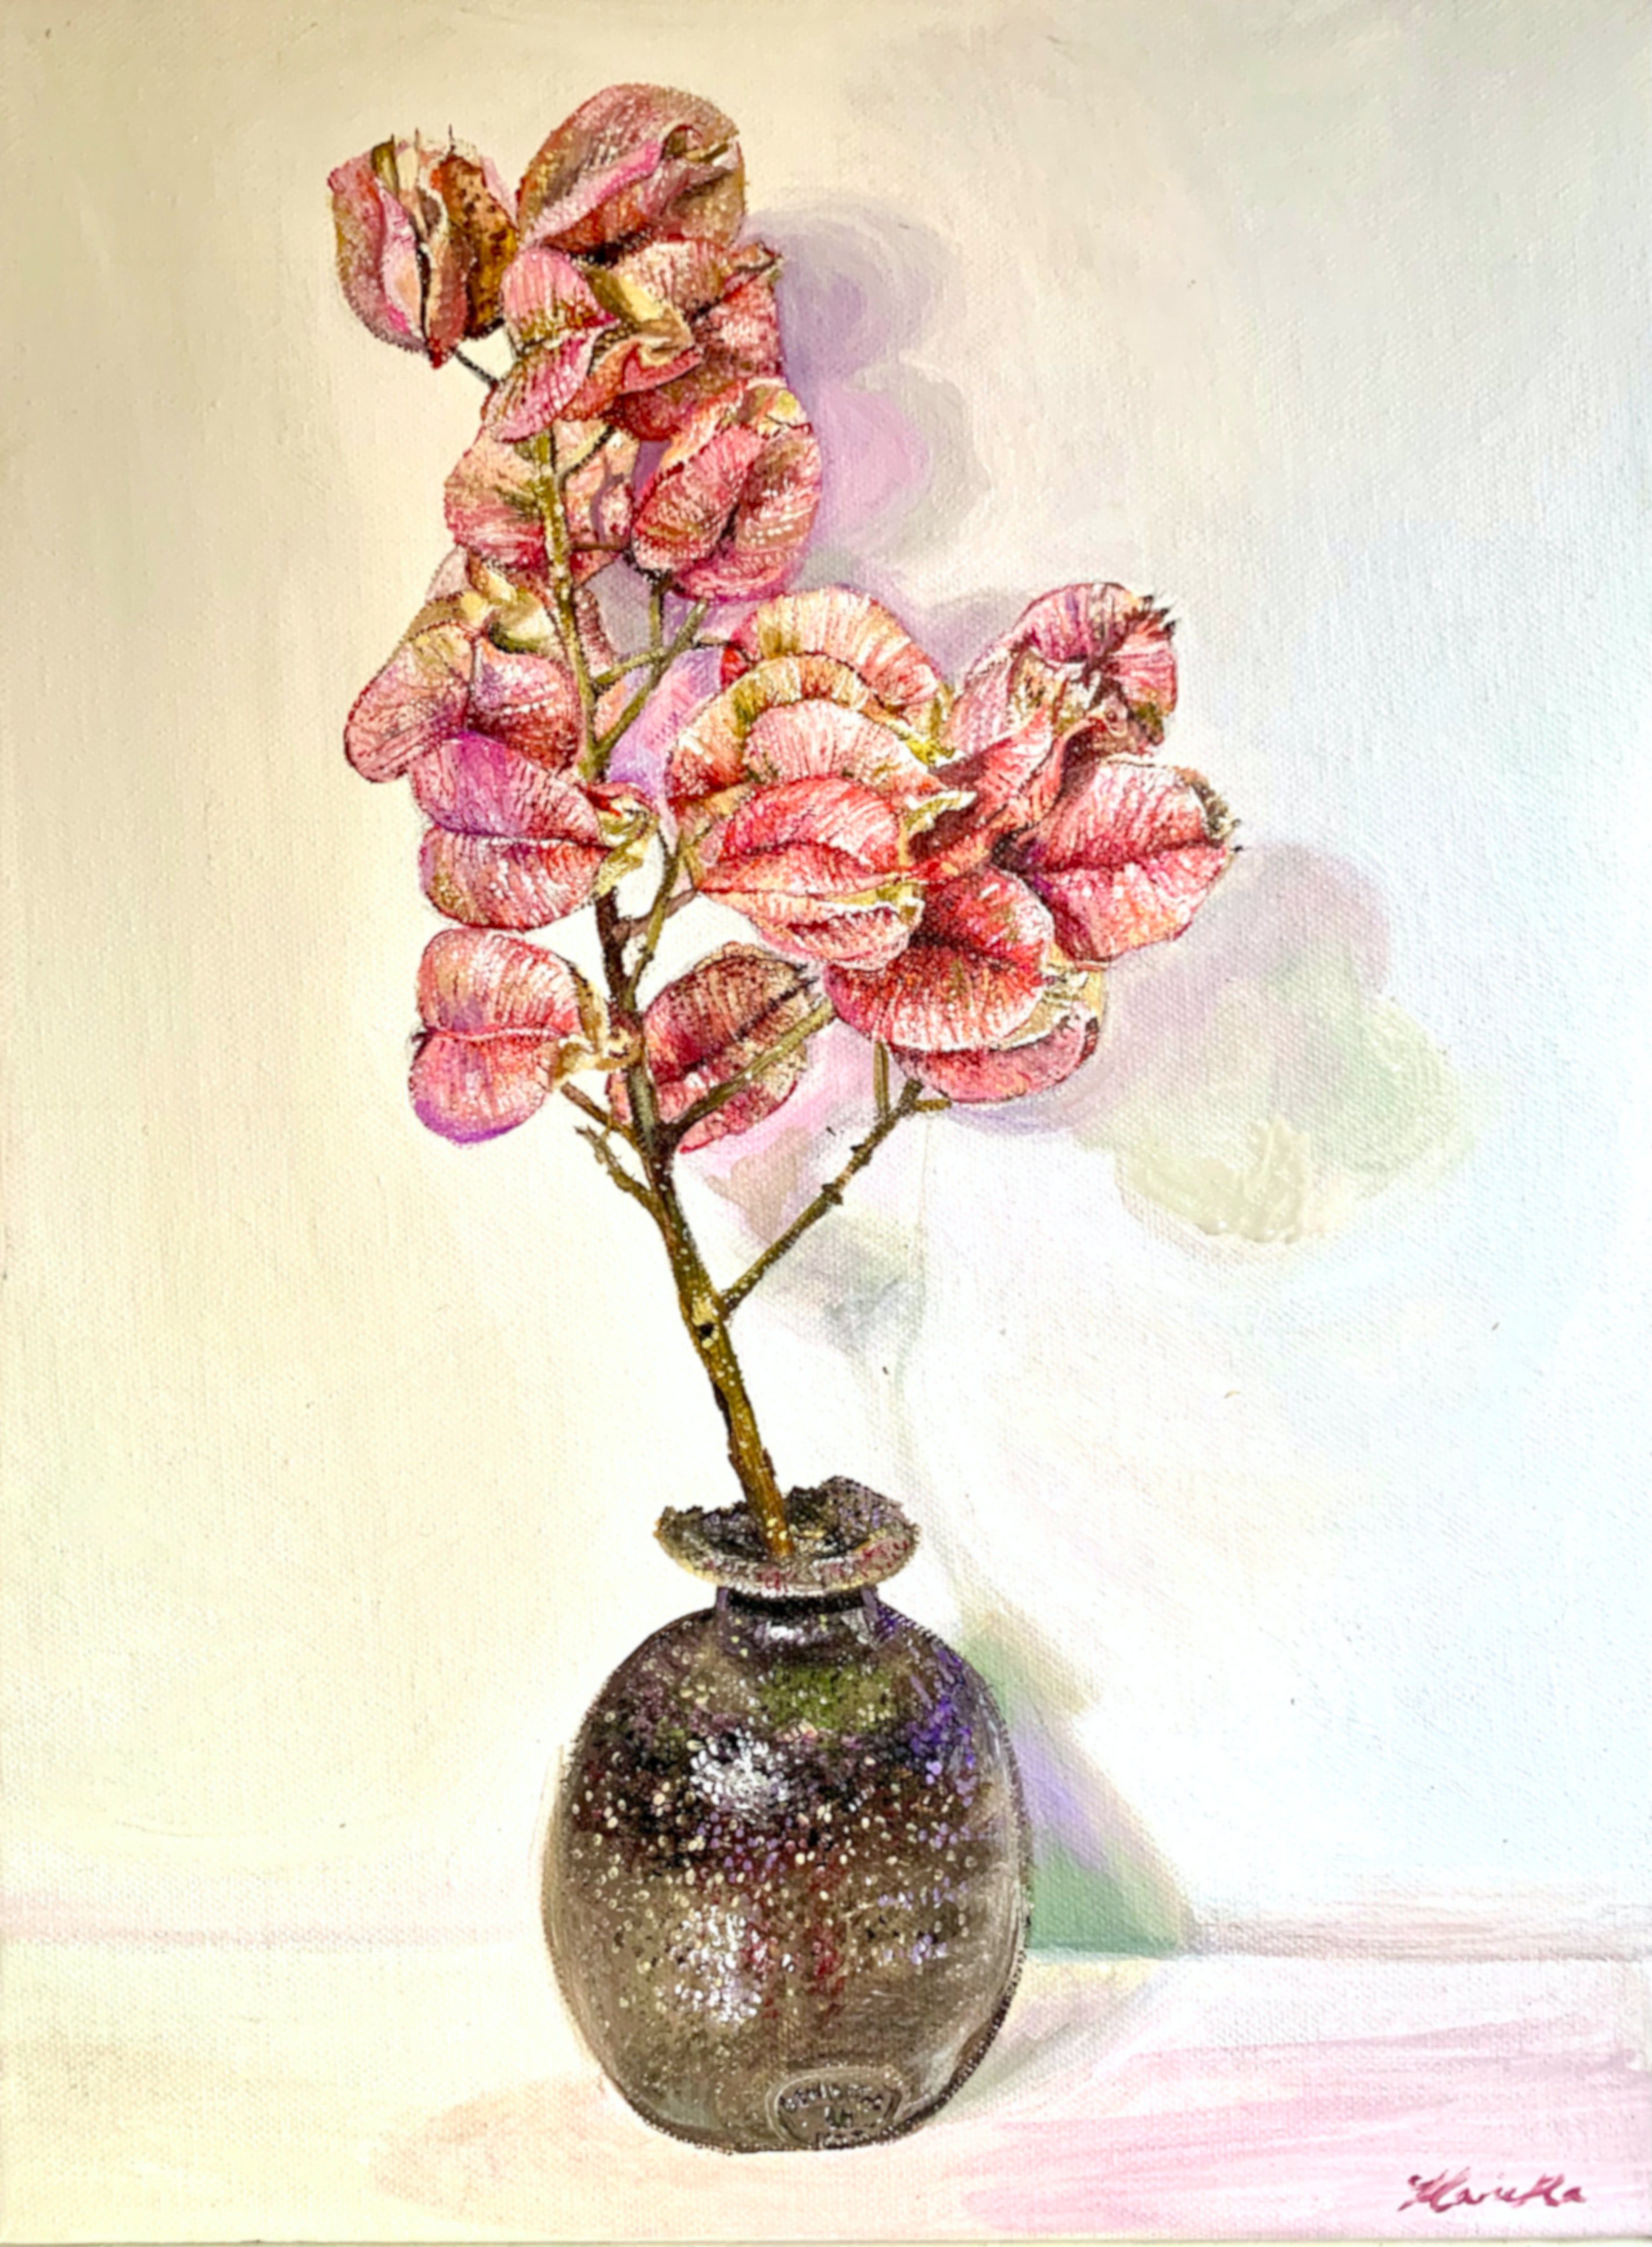 Pink seed pods from the Yellow Rain tree in a brown chipped vase sitting on a table.